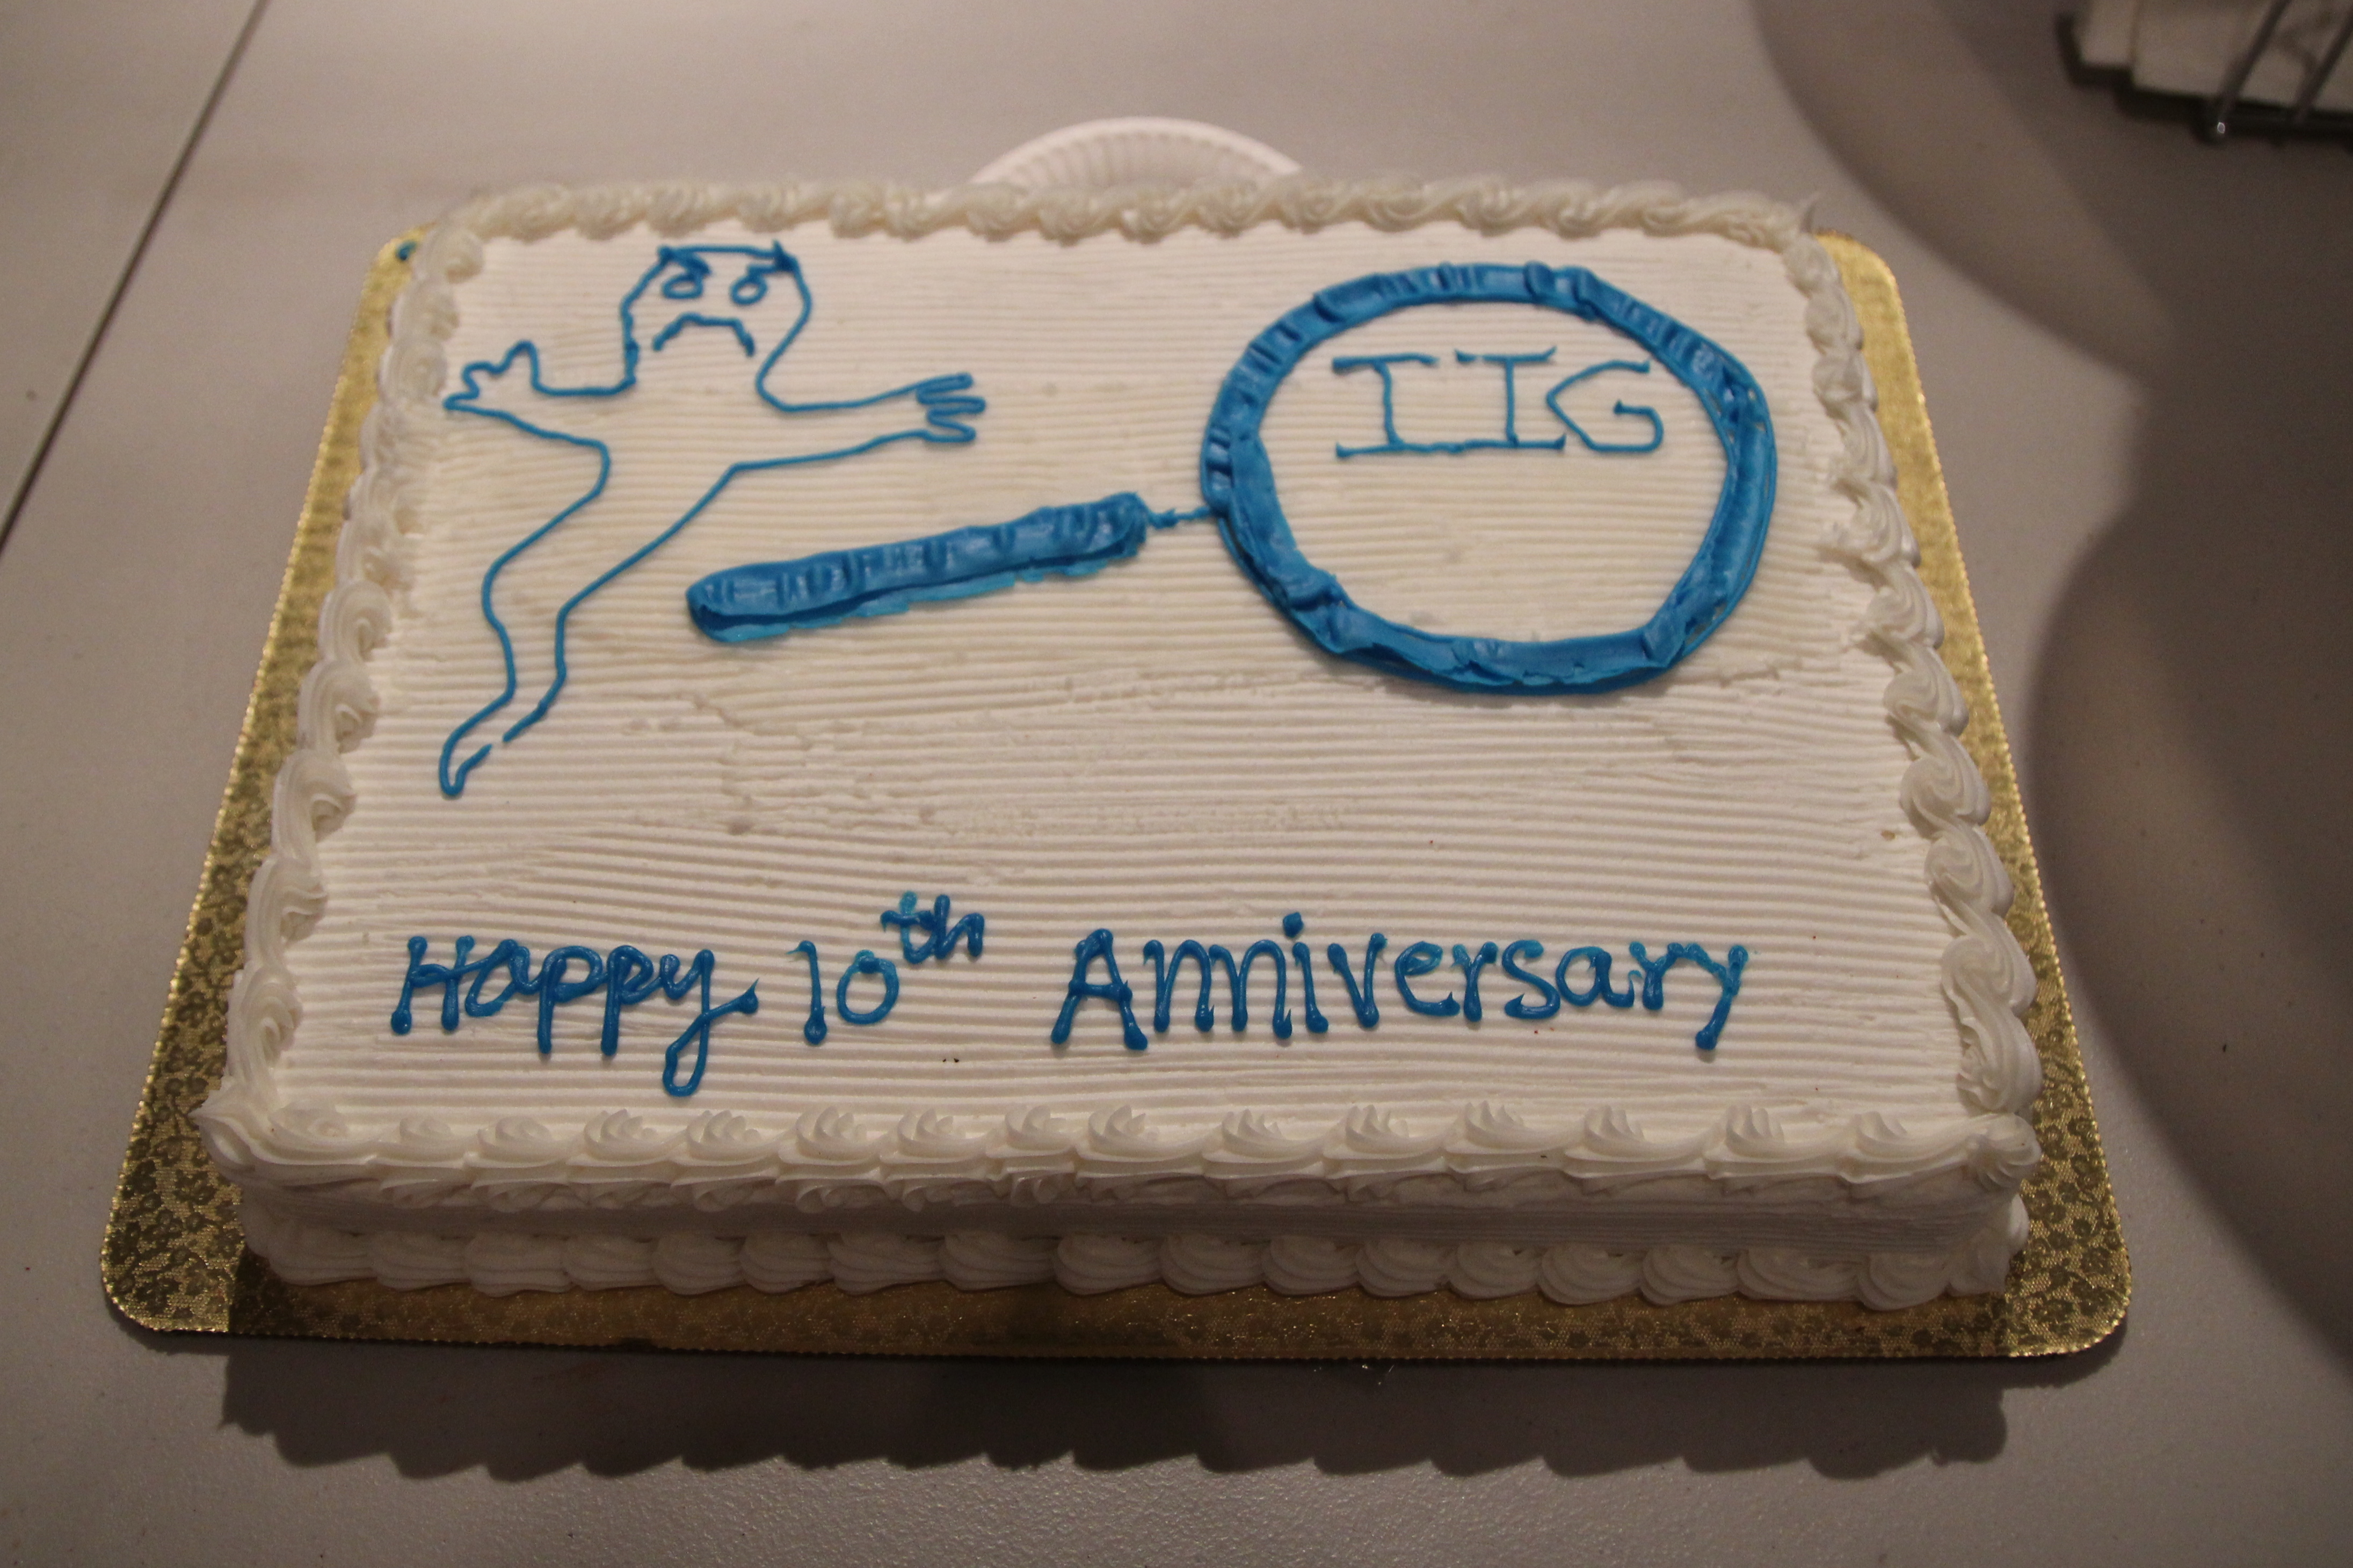 10Th Anniversary Cakes submited images